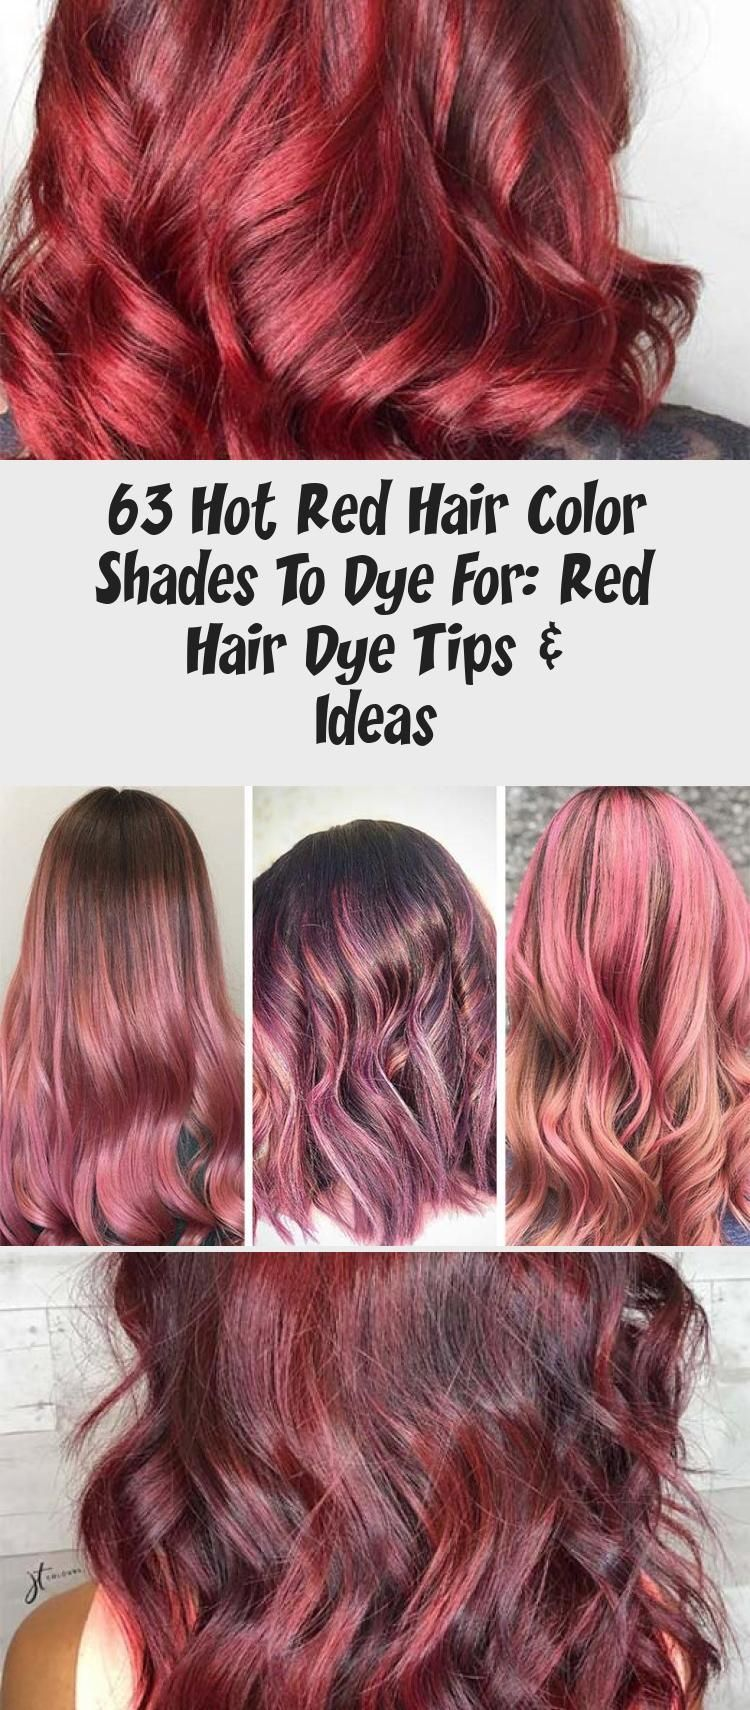 Red Hair Color Shades Red Hair Dye Tips Ideas Dyedhairgalaxy